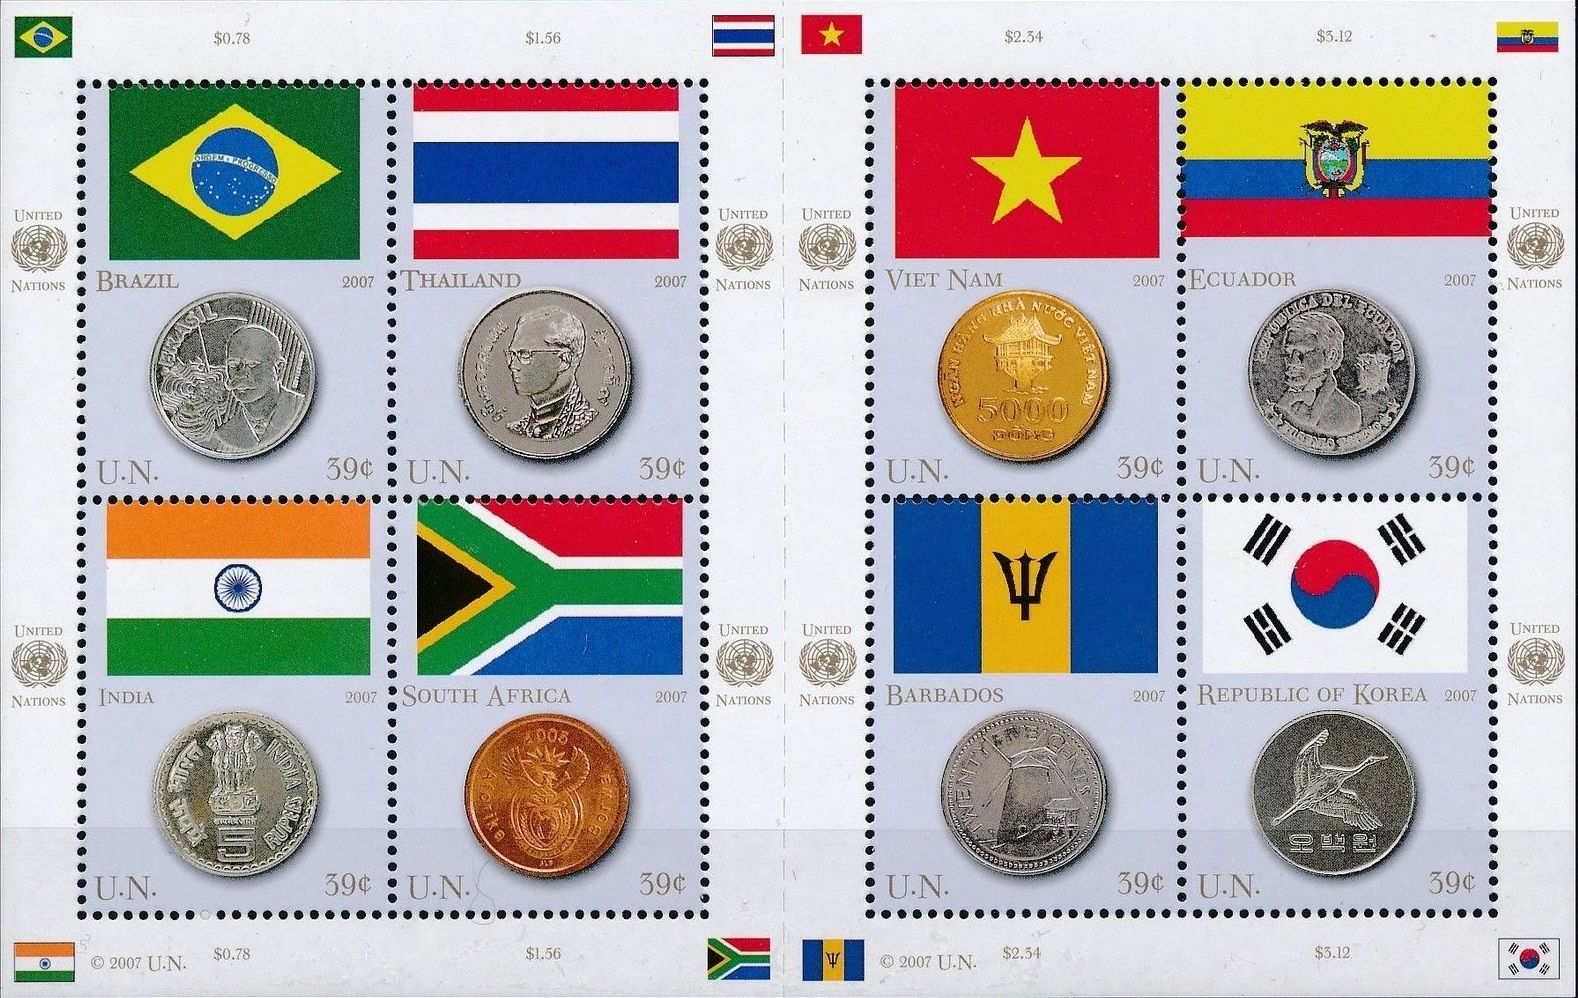 United Nations-New York 2007 Flags and Coins of the Member States